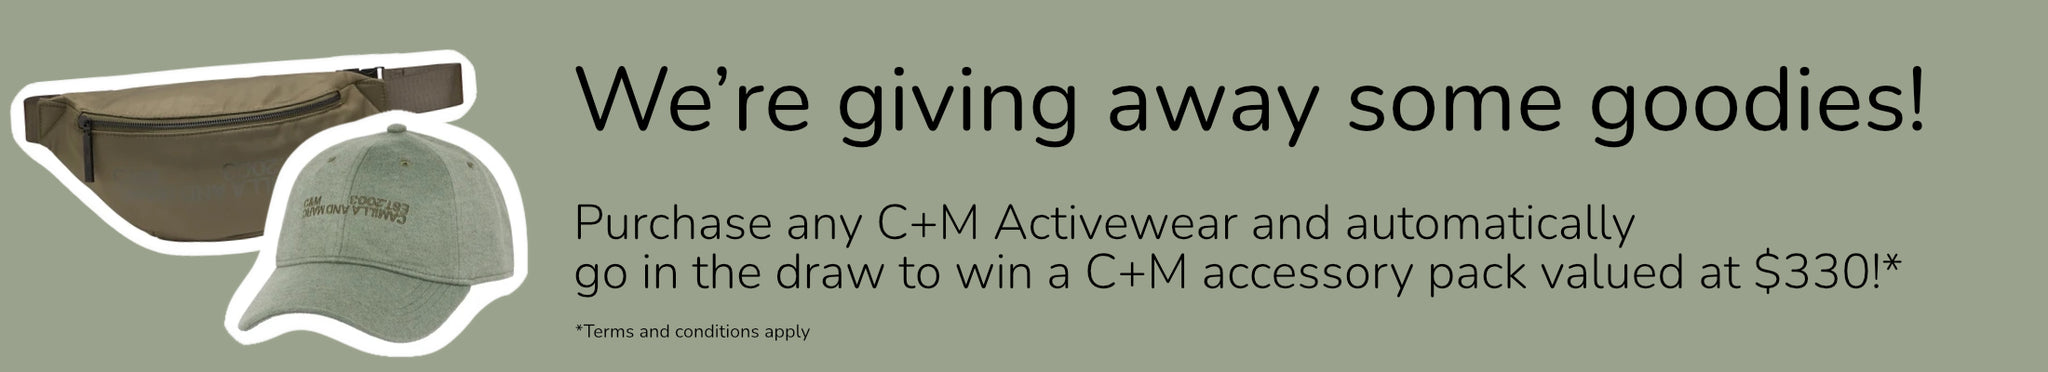 Giveaway at Styler, go in the draw to win a Camilla and Marc accessory pack simply by purchasing C+M activewear